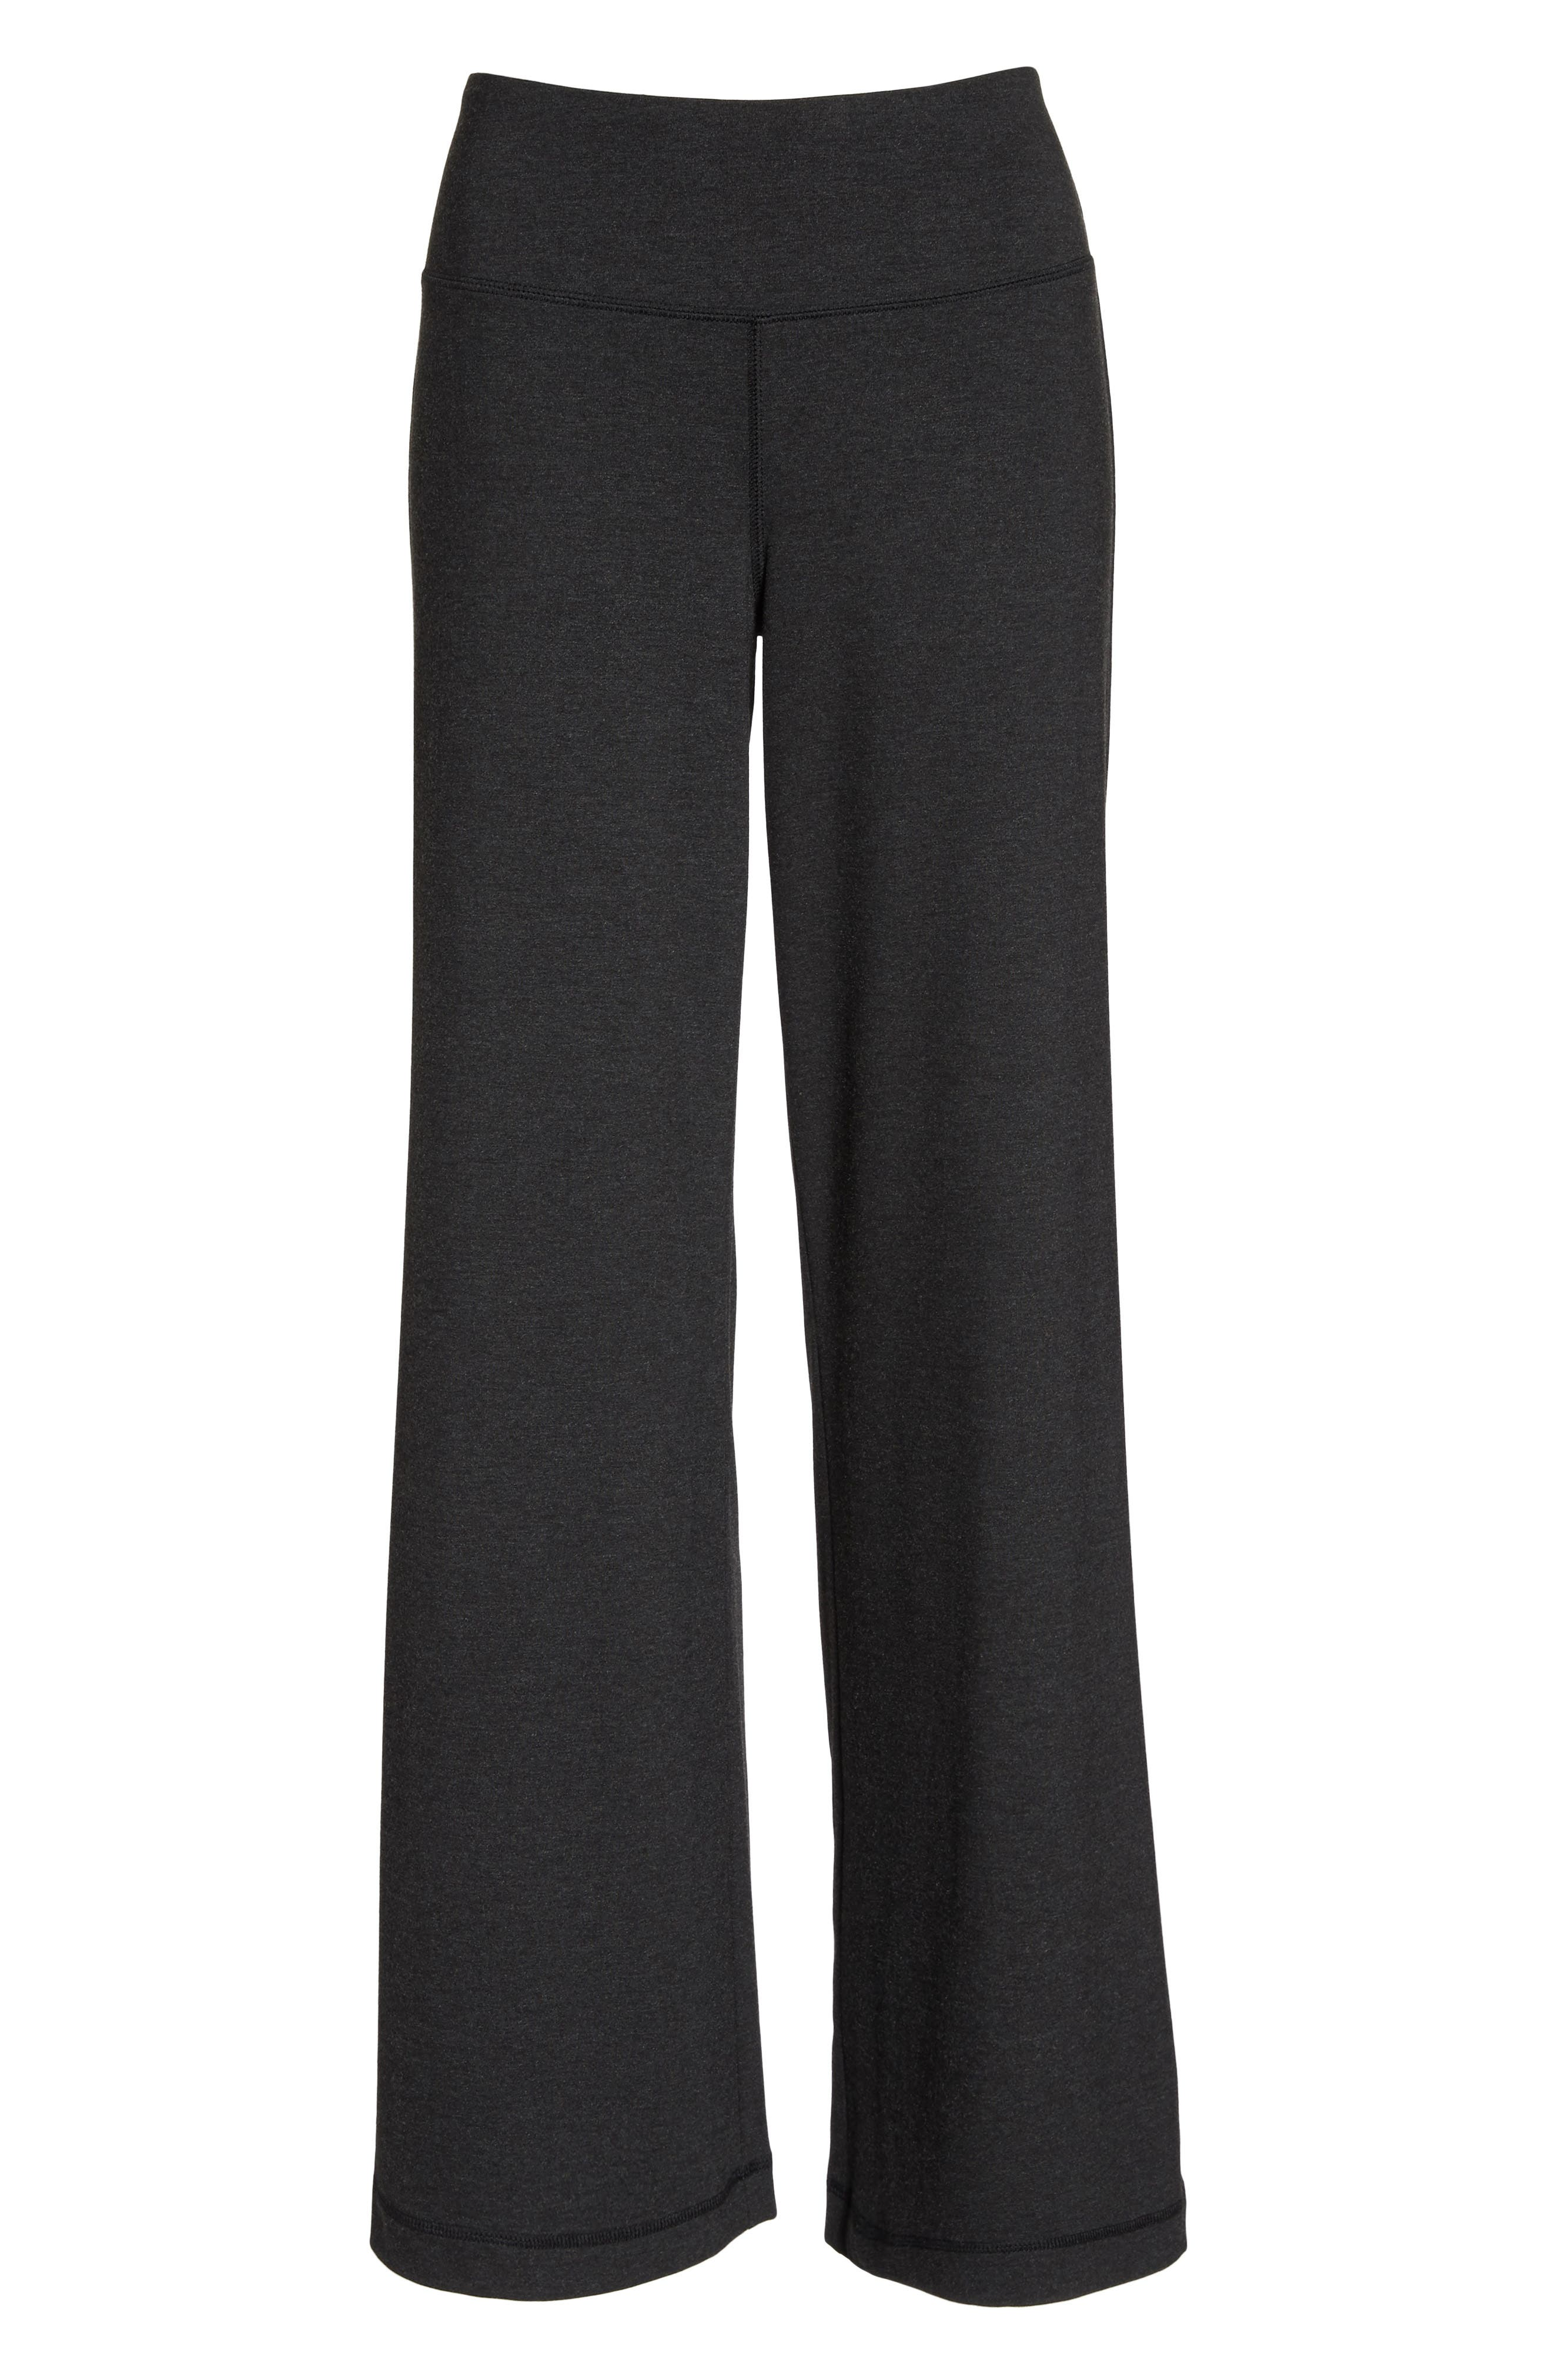 Go With The Flow Pants,                             Alternate thumbnail 7, color,                             GREY DARK CHARCOAL HEATHER